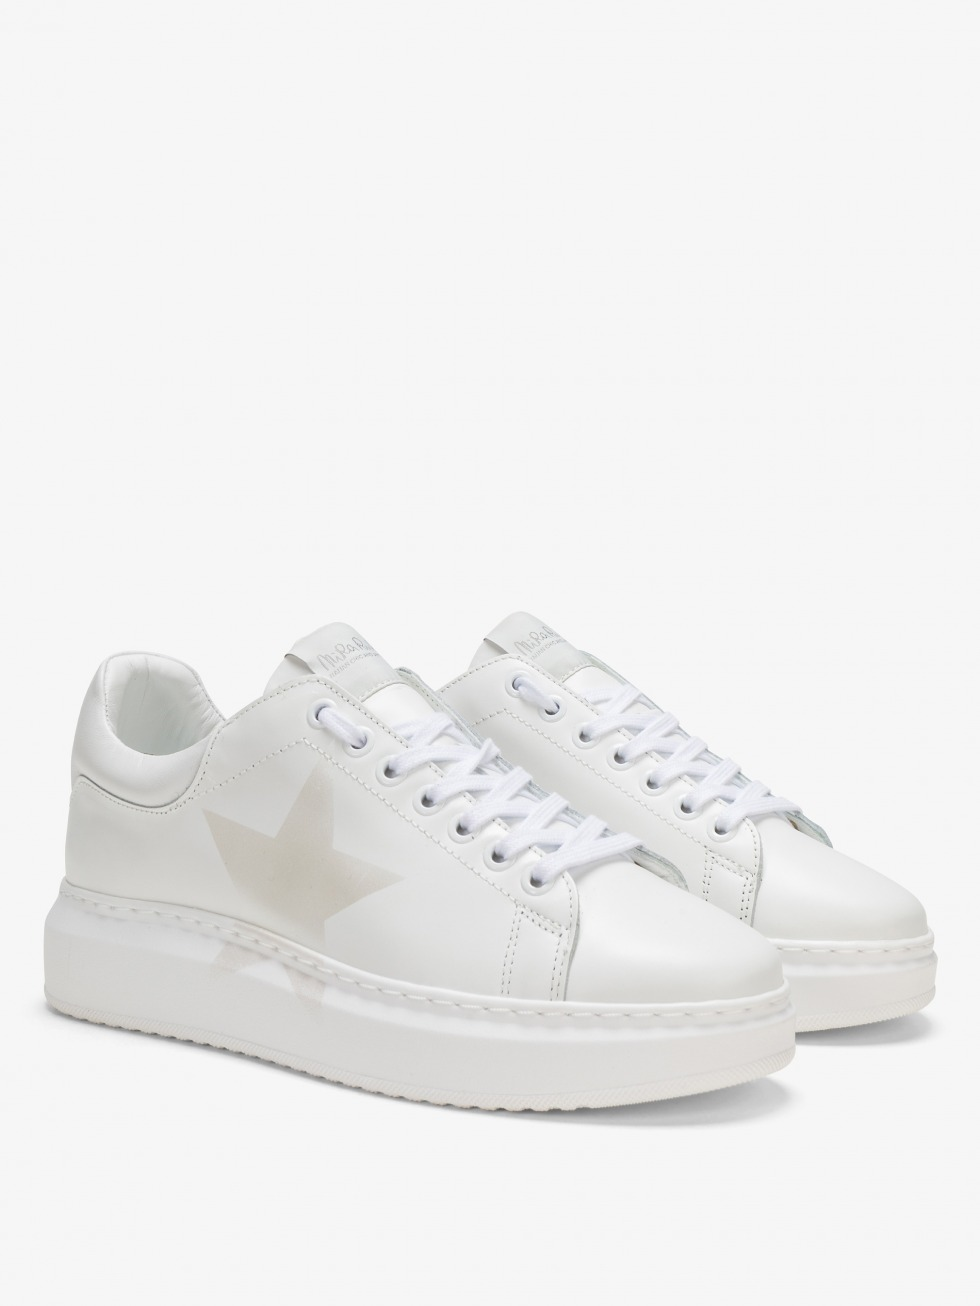 Angel Sneakers Total White - Star